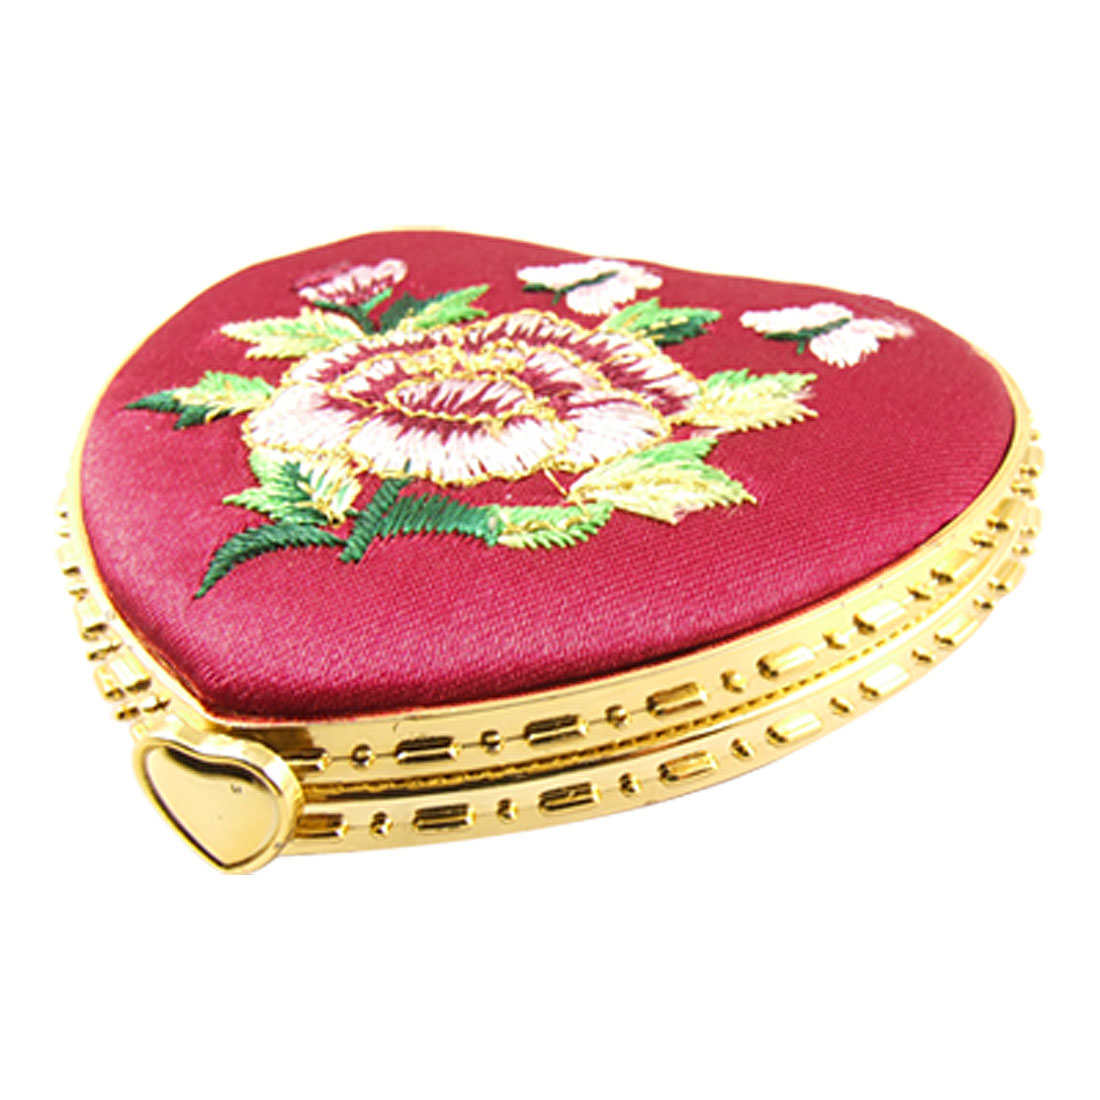 Gold Tone Hem Embroidered Floral Decor Red Heart Shaped Compact Mirror